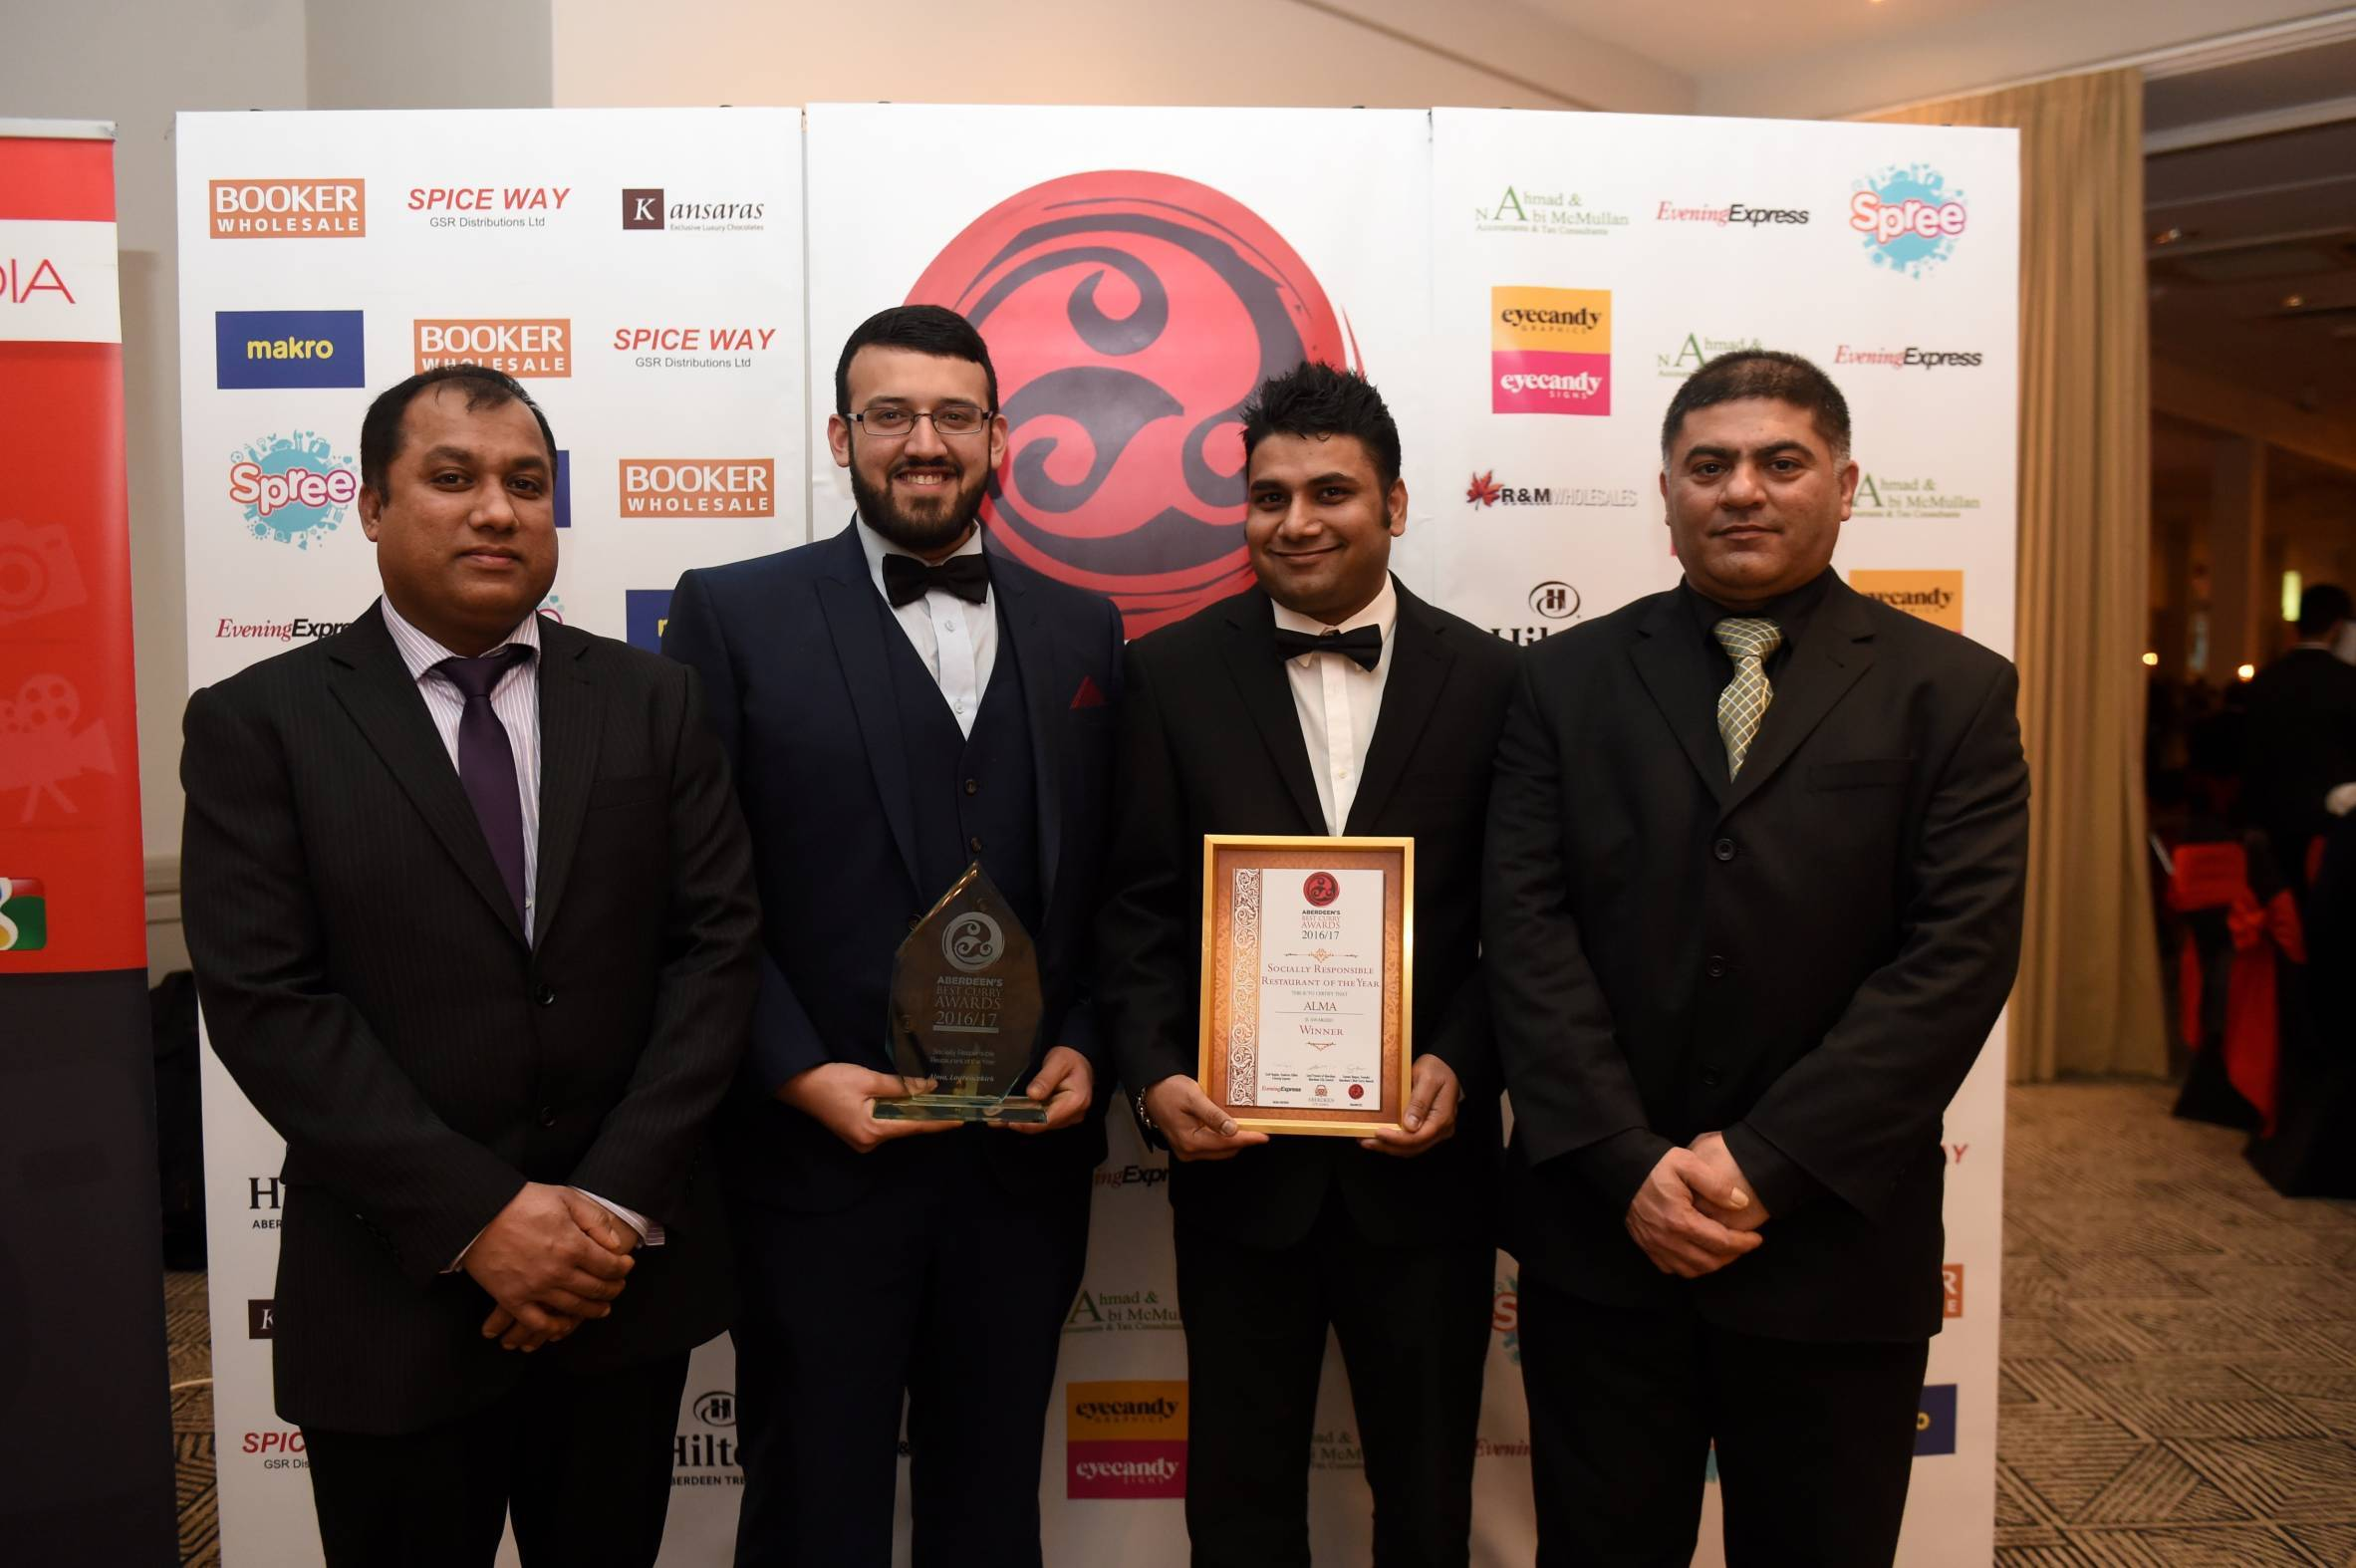 Pictured is the winner of The Socially Responsible Restaurant, Alma. From left, Islam Fozul, Nazrul Islam Uddin, Parvez Akhtar and Irfan Guppi.